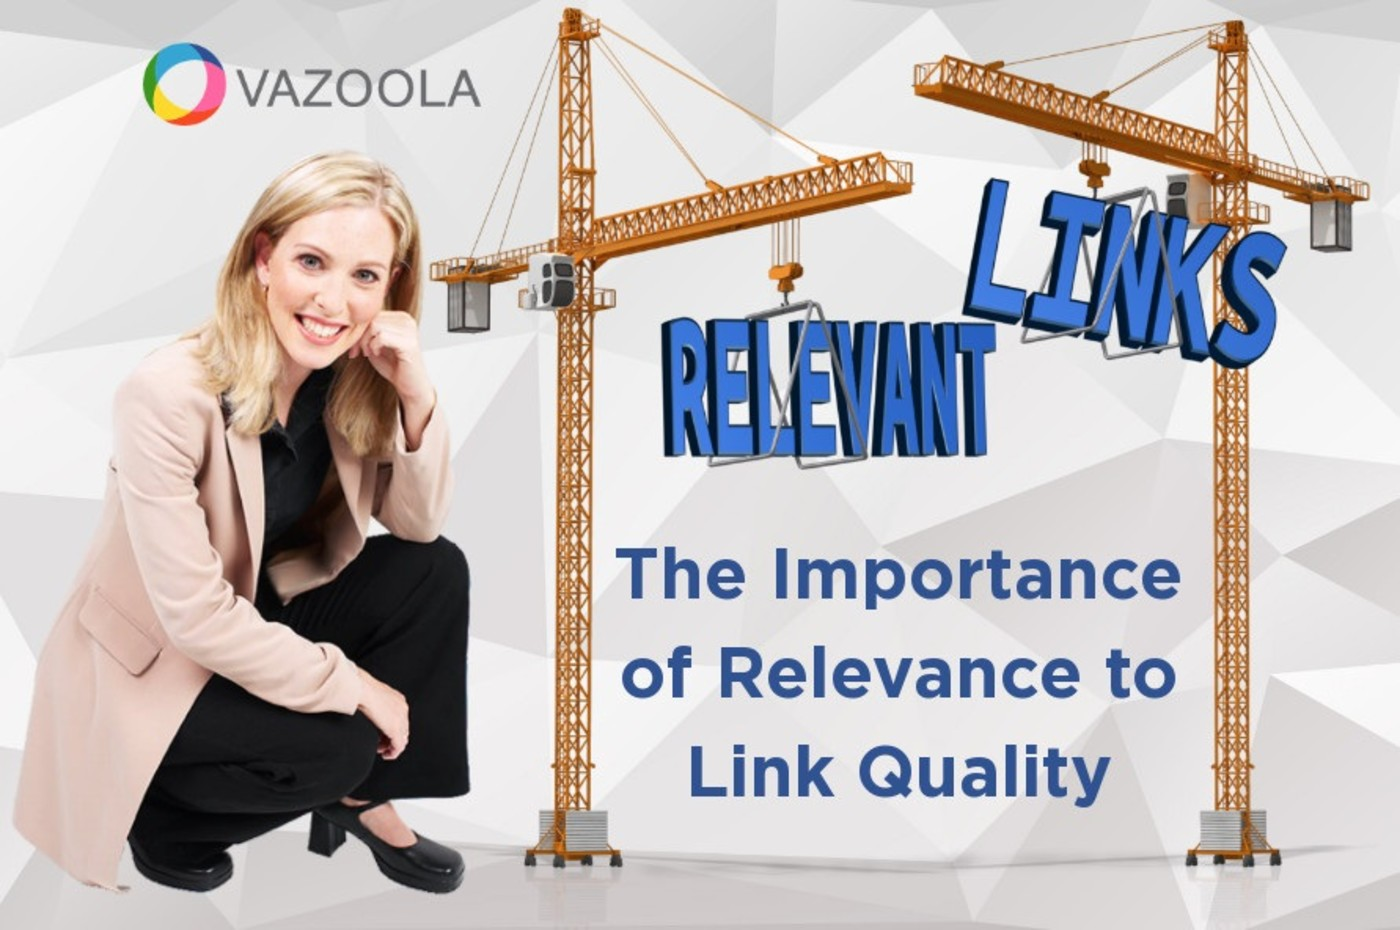 The Importance of Relevance to Link Quality